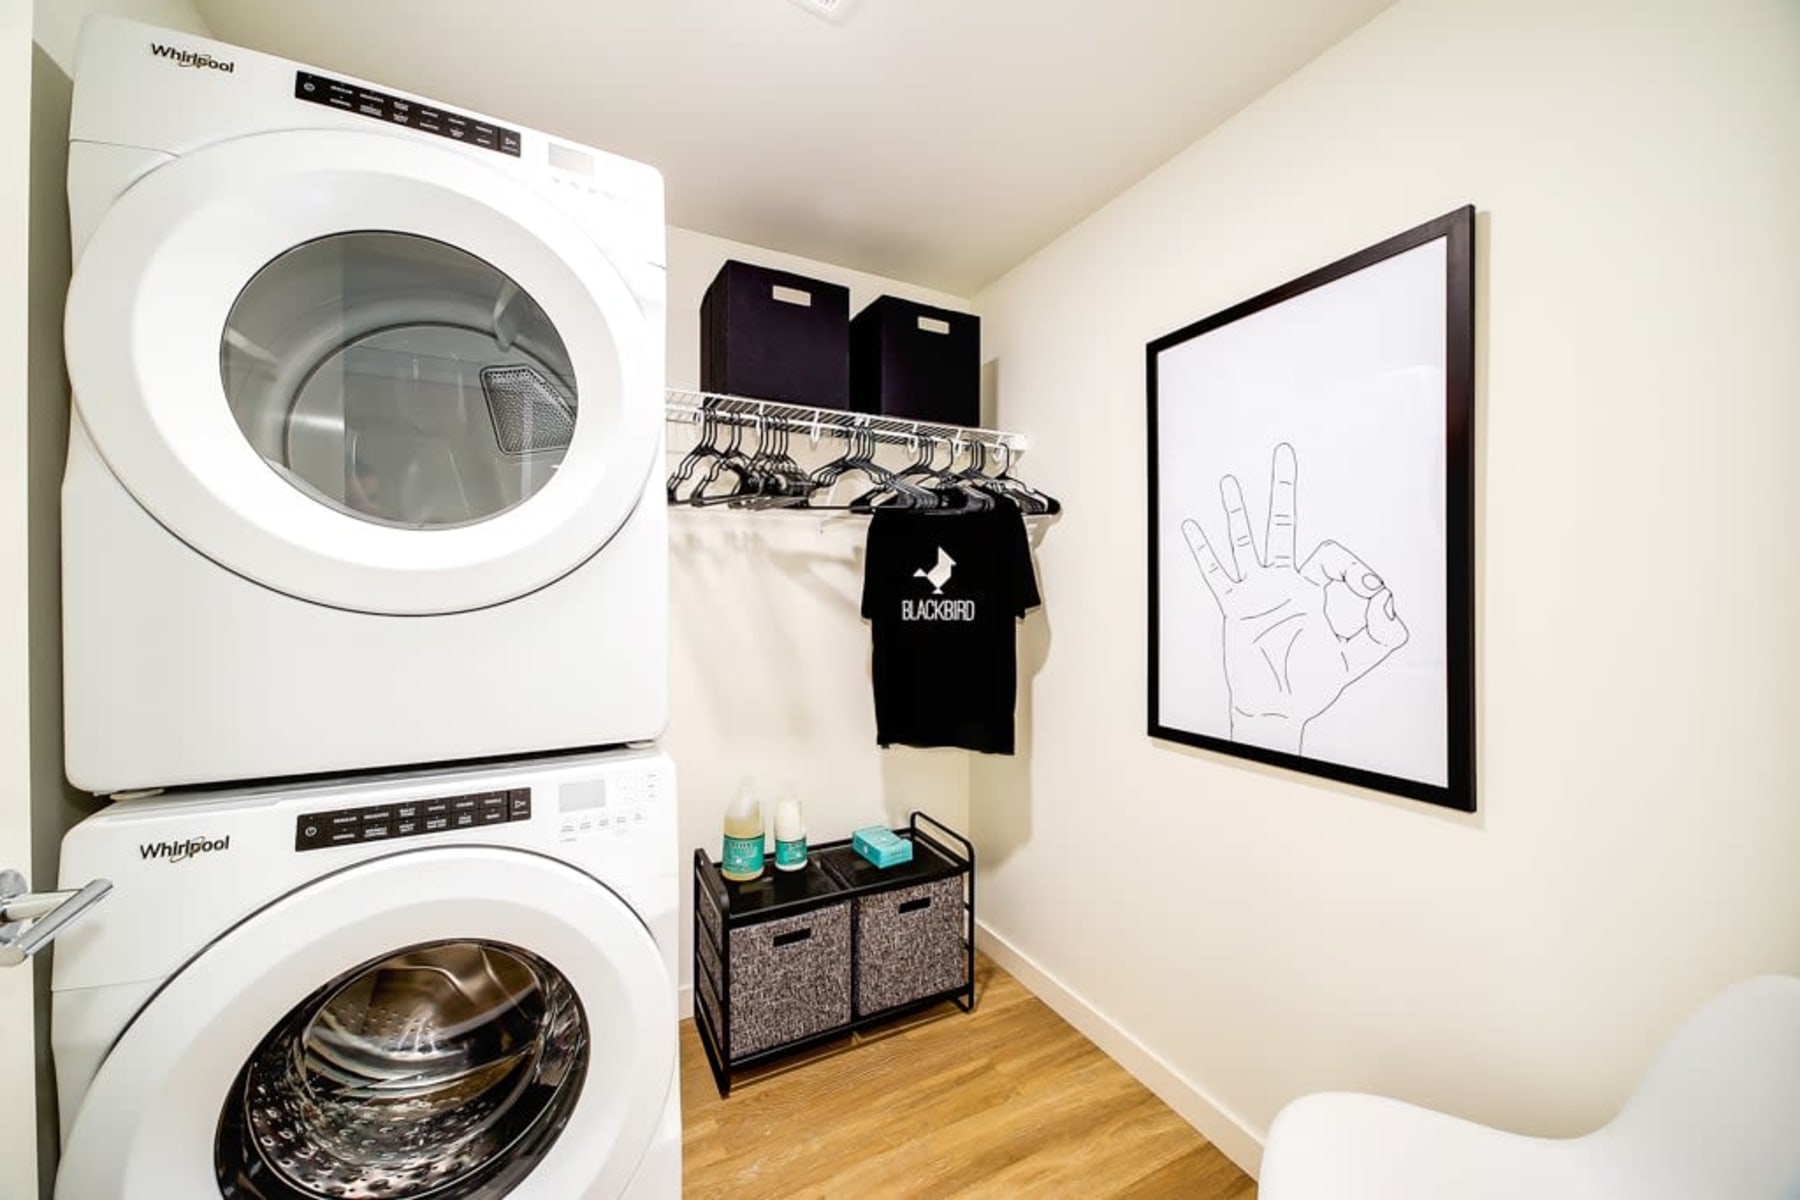 Washer and Dryer at Apartments in Redmond, Washington